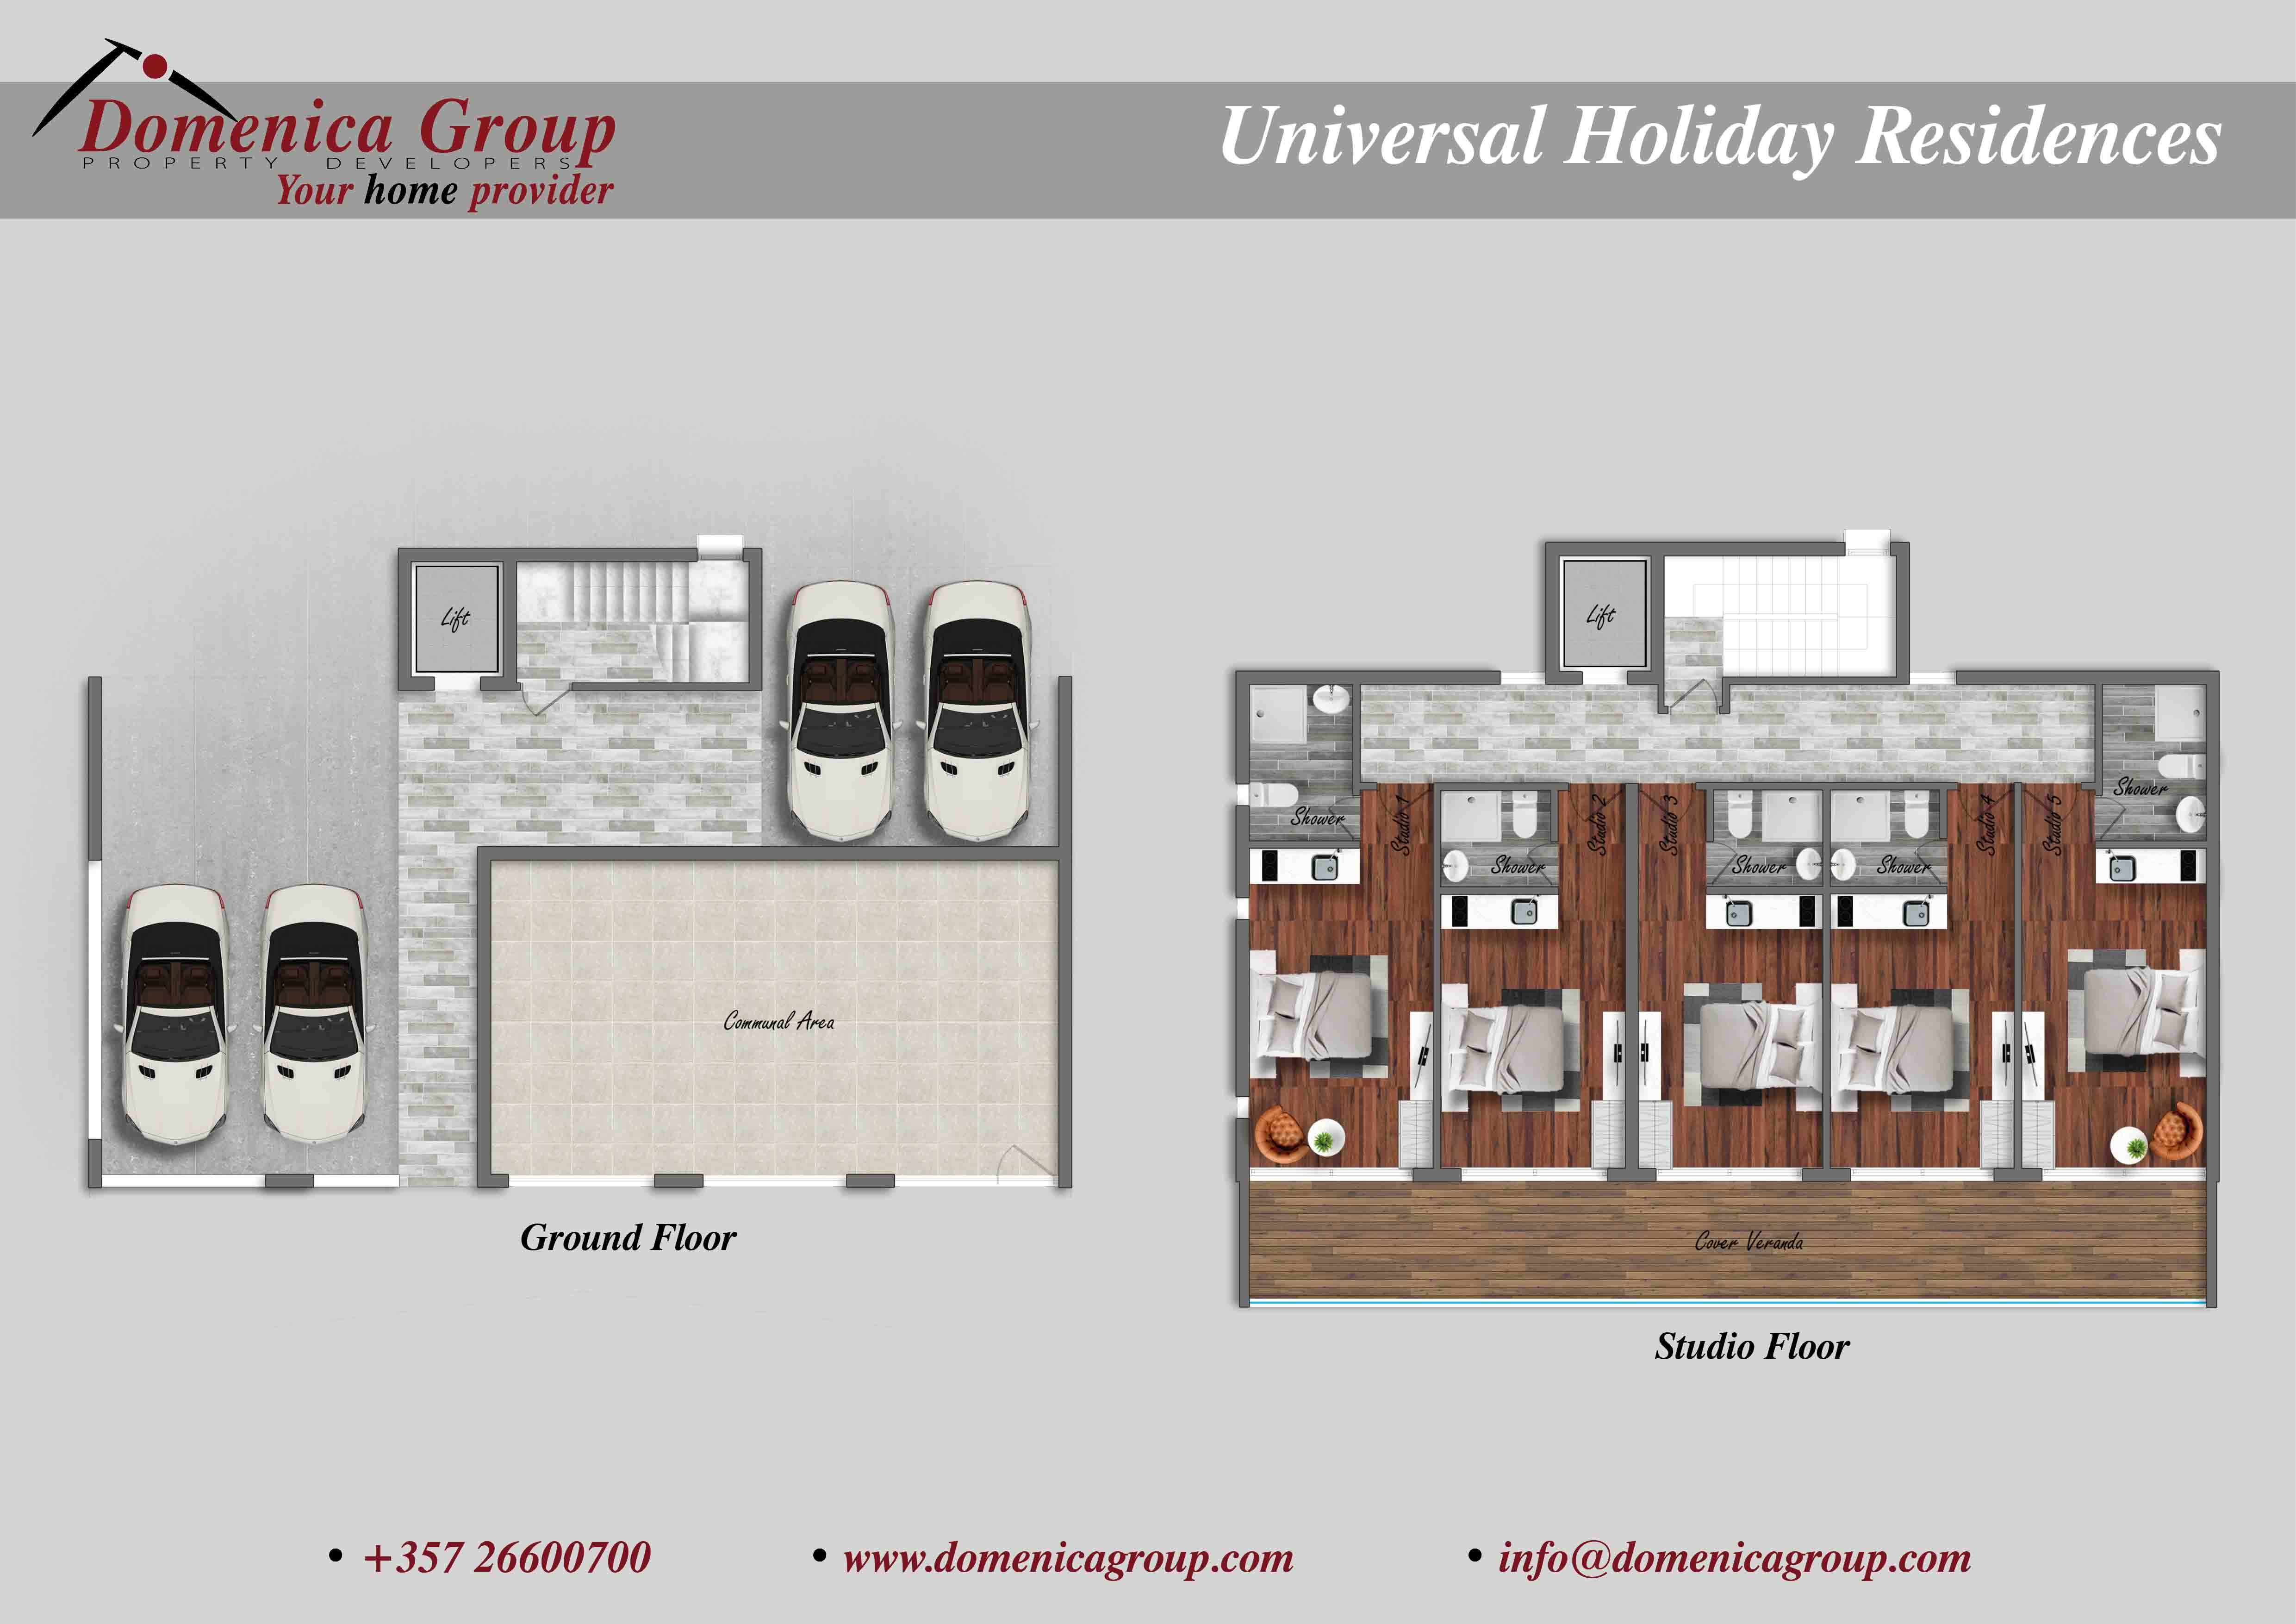 UNIVESAL HOLIDAY RESIDENCES Ground floor studio floor low res